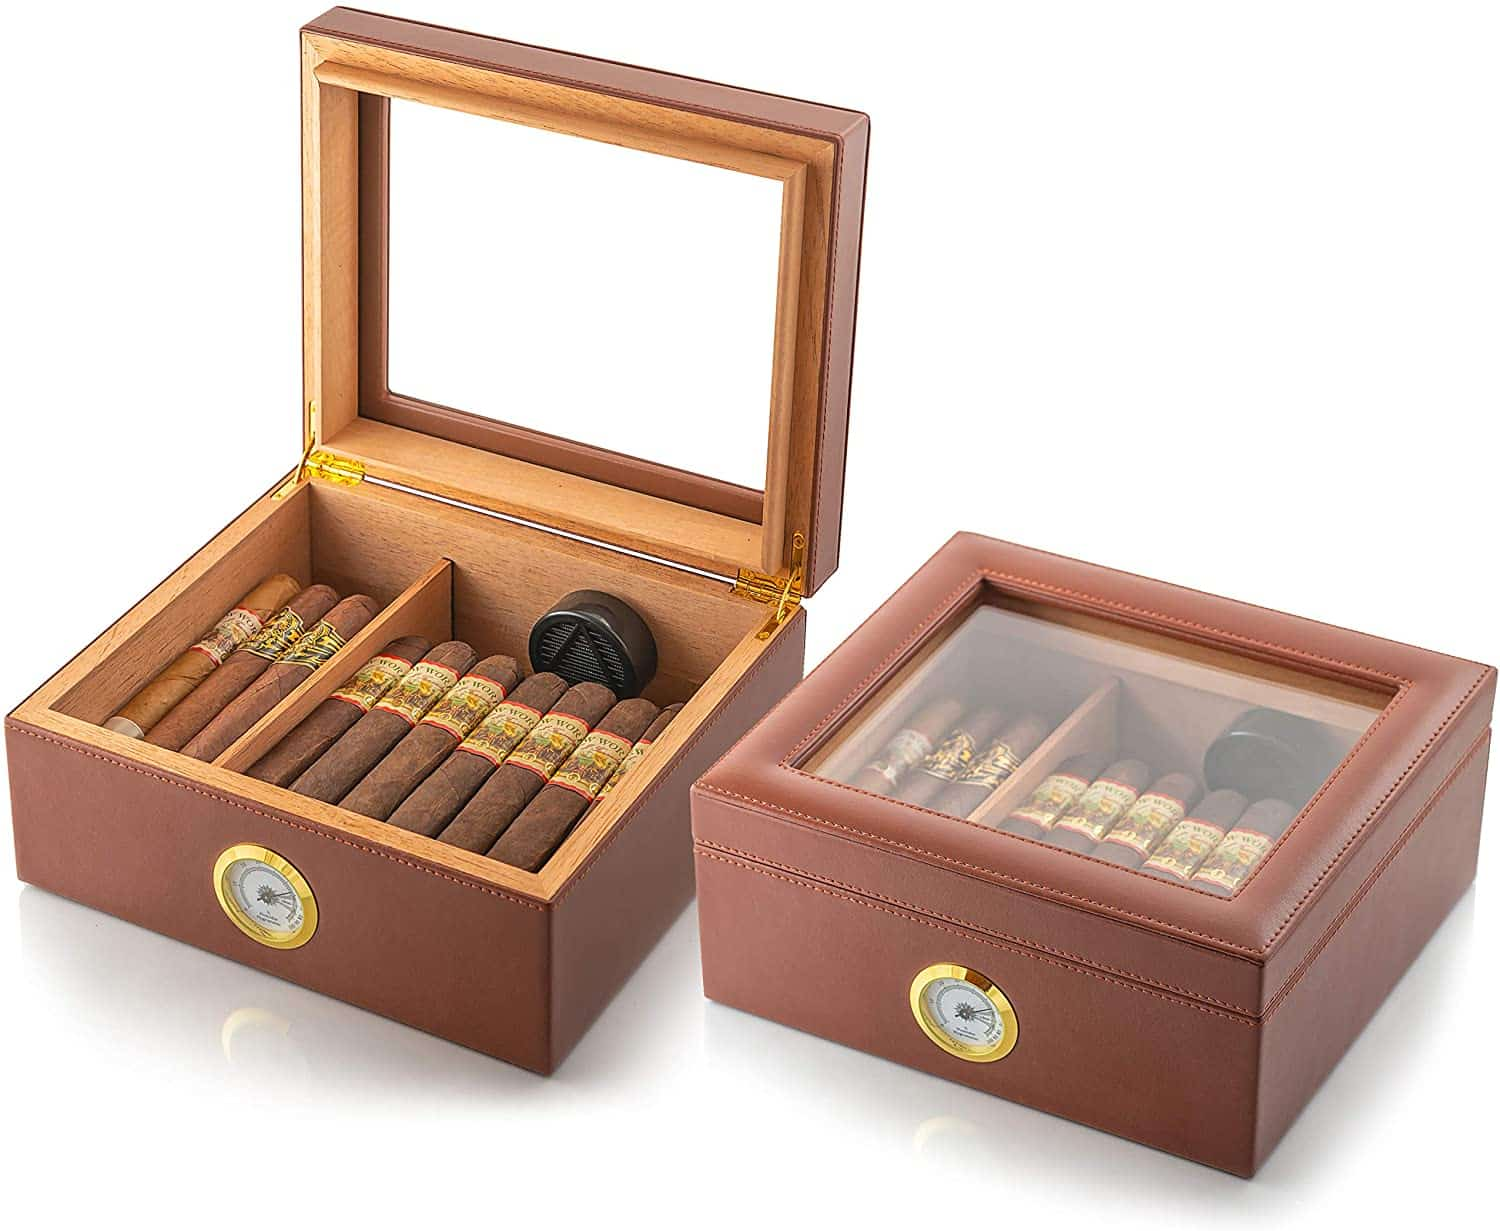 Amerigo Luxury Handcrafted Cigar Humidor